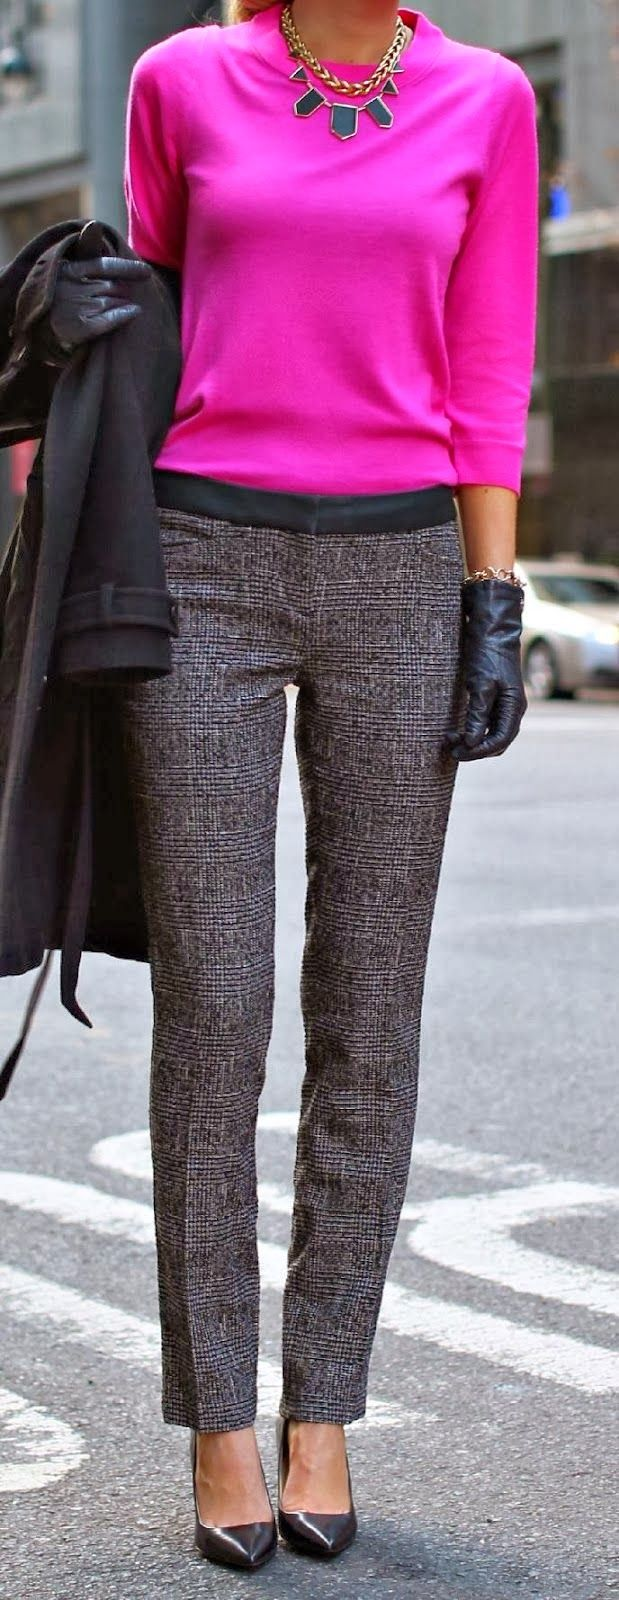 Bright top, textured slacks, heels, chunky jewelry in a contrasting color